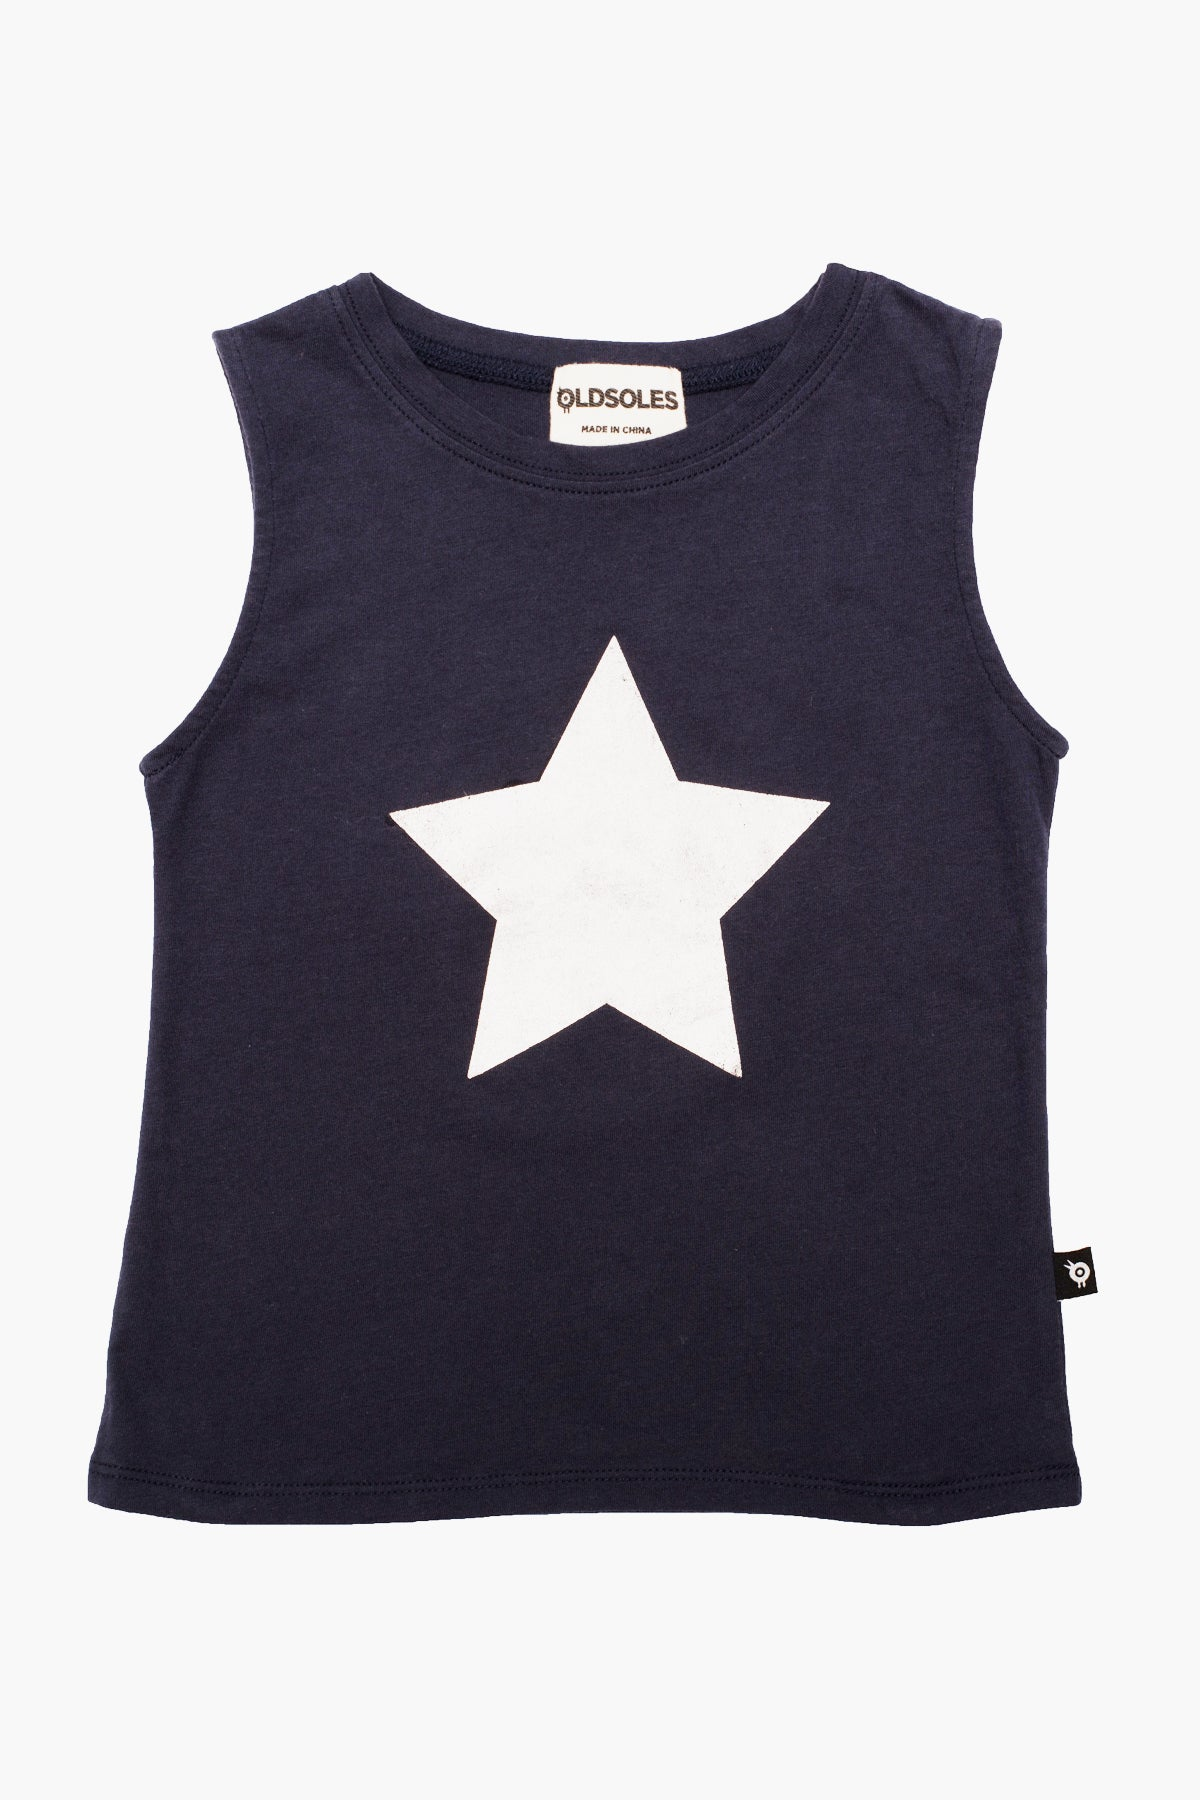 Old Soles Star Performer Kids Tank